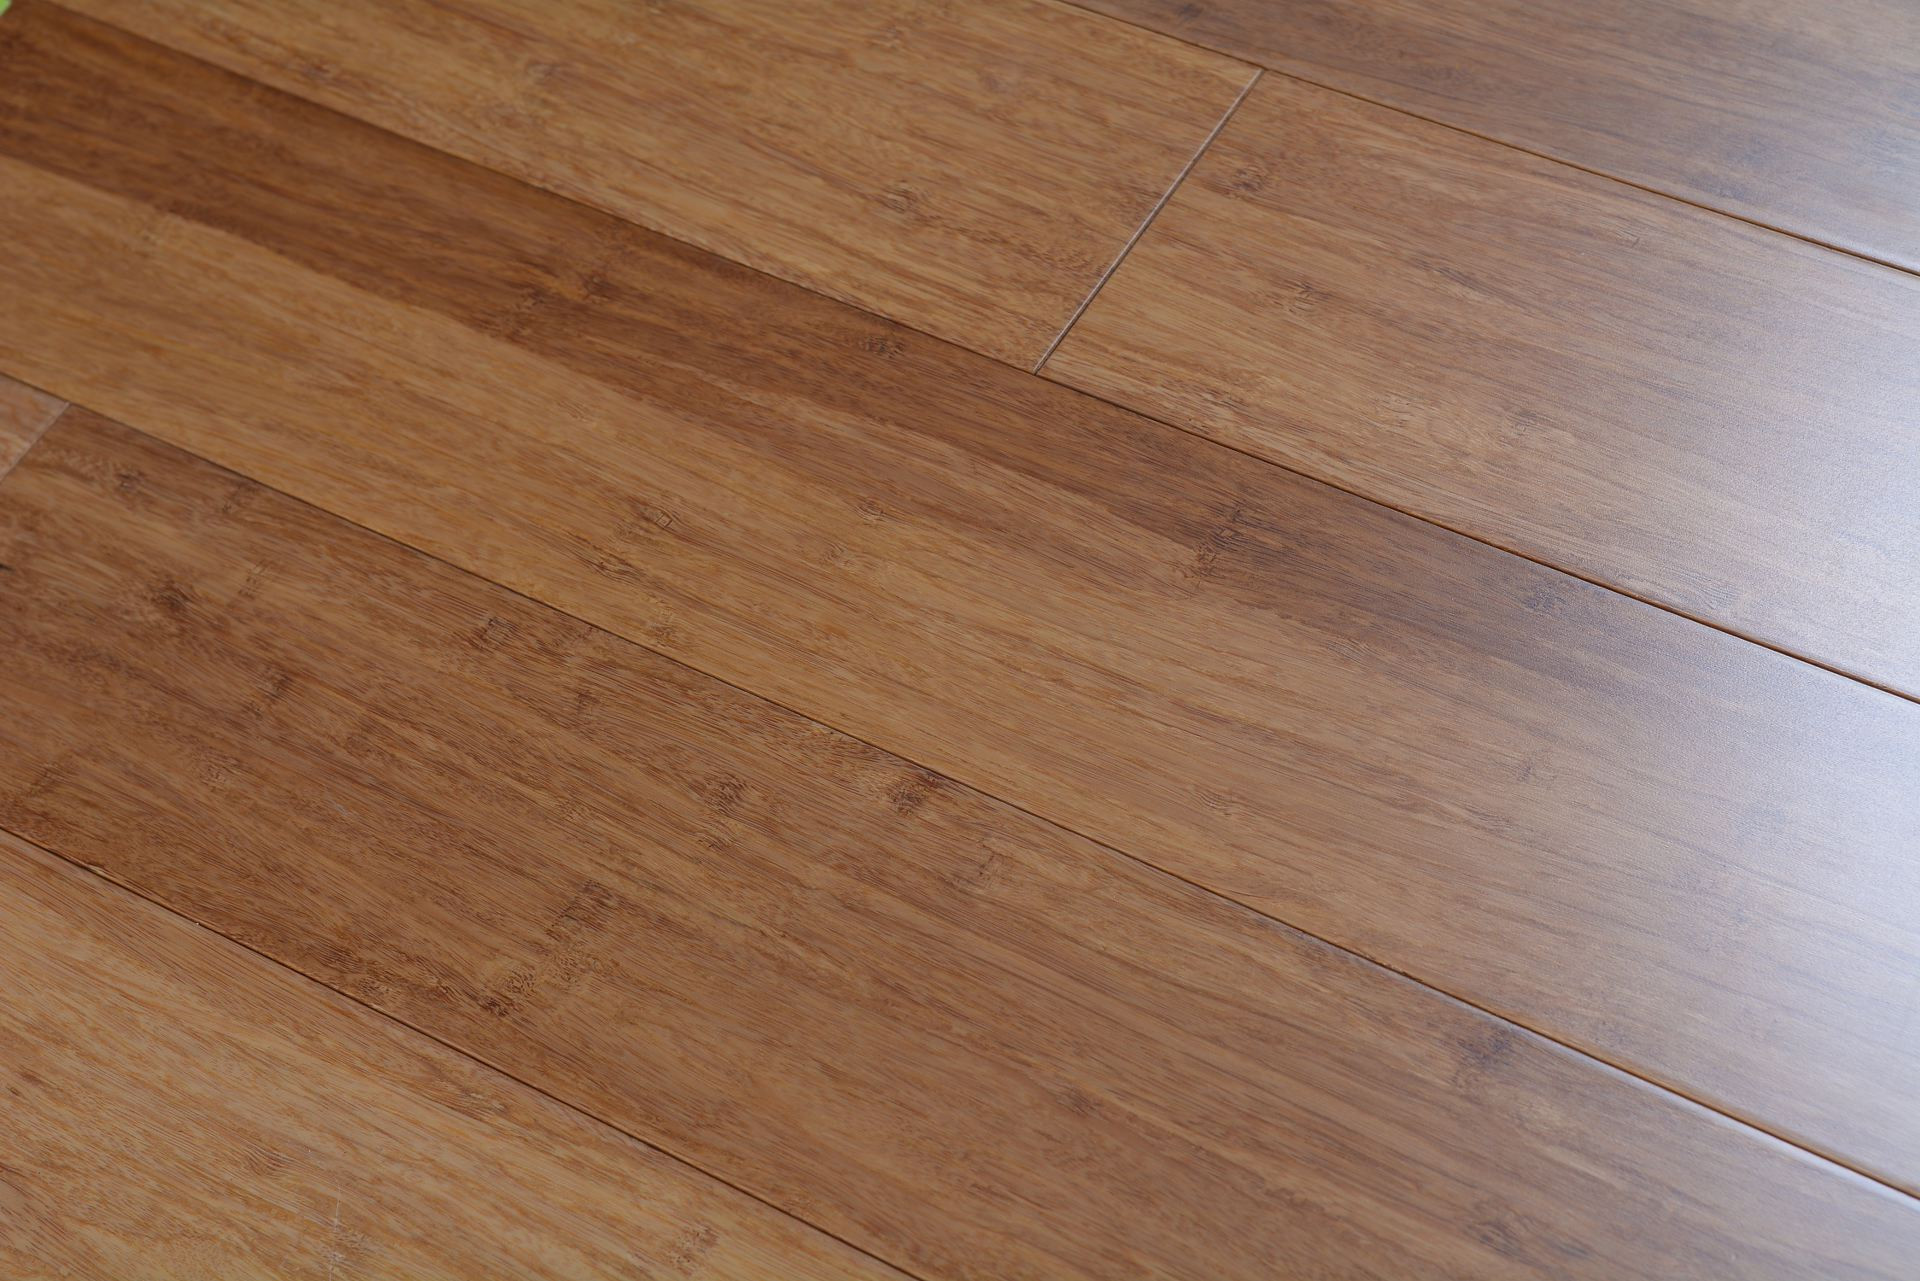 direct hardwood flooring charlotte nc 28208 of engineered hardwood direct hardwood flooring charlotte intended for zoom in read more